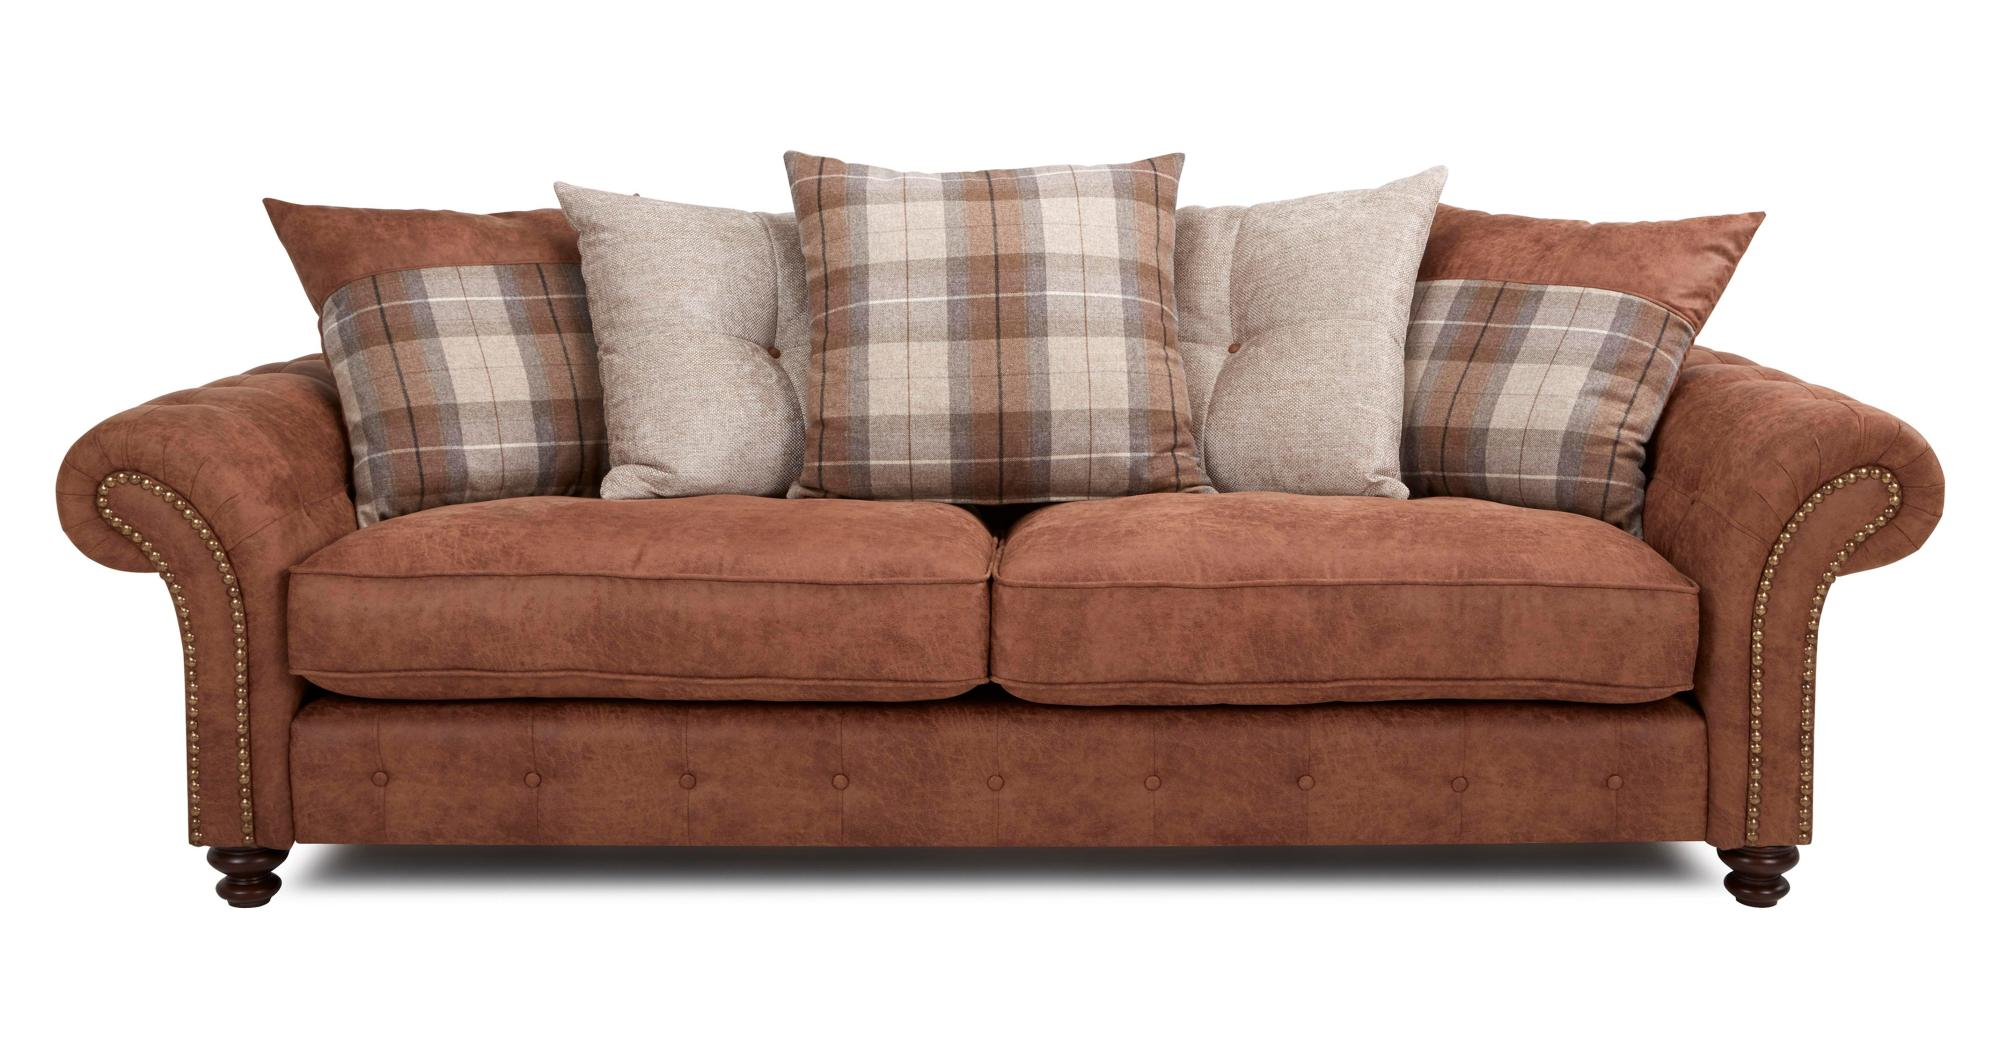 DFS Oakland Brown Fabric 4 Seater Pillow Back Sofa 2